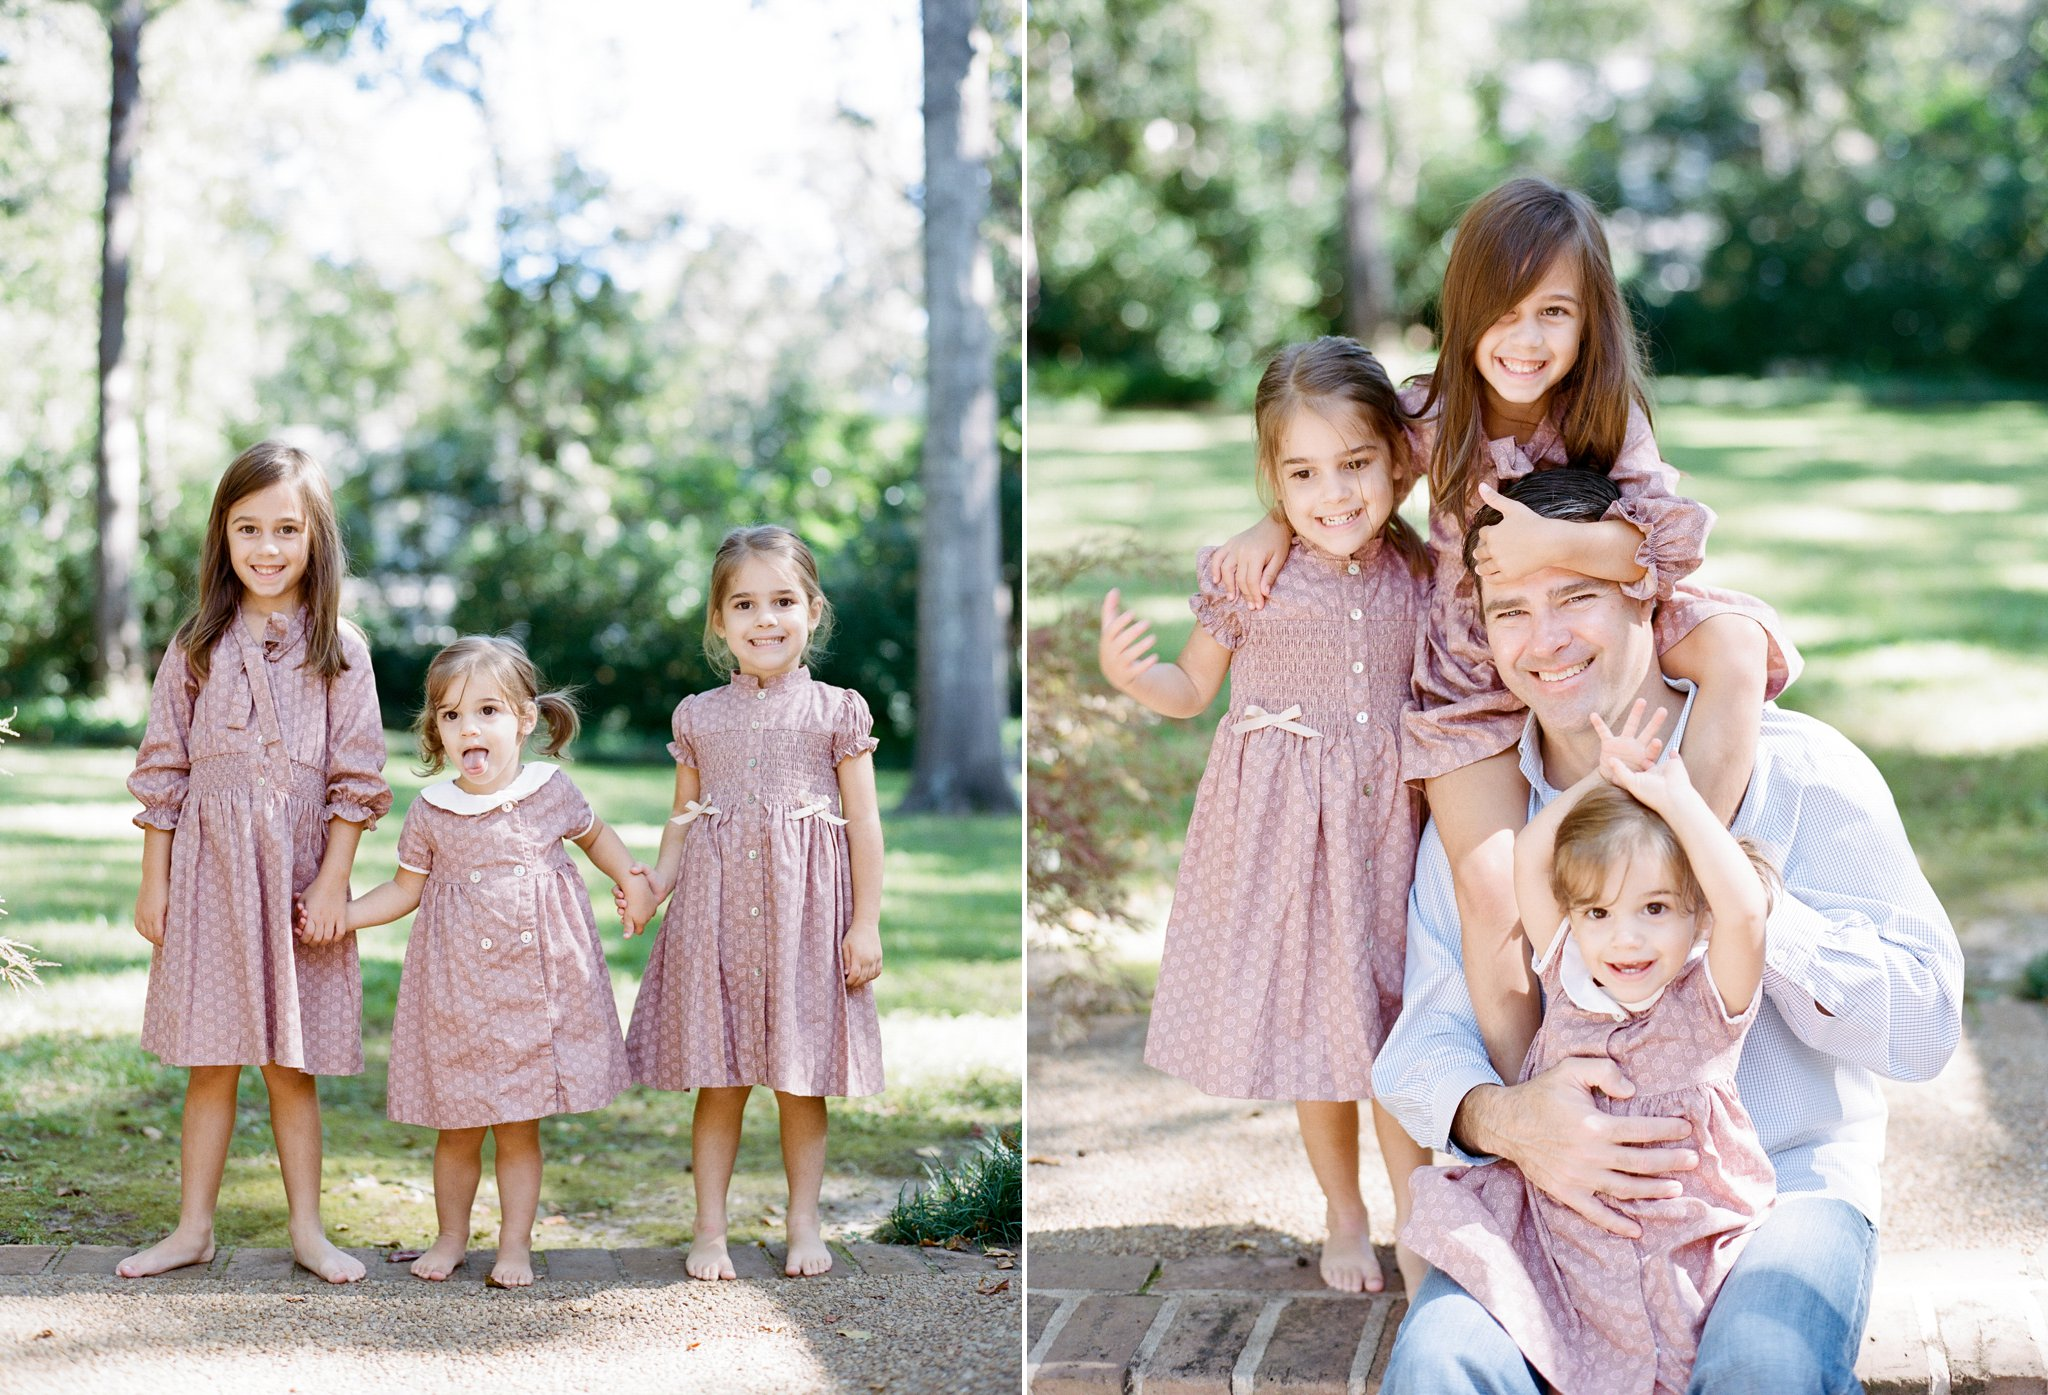 tallahassee family photographer shannon griffin photography_0043.jpg